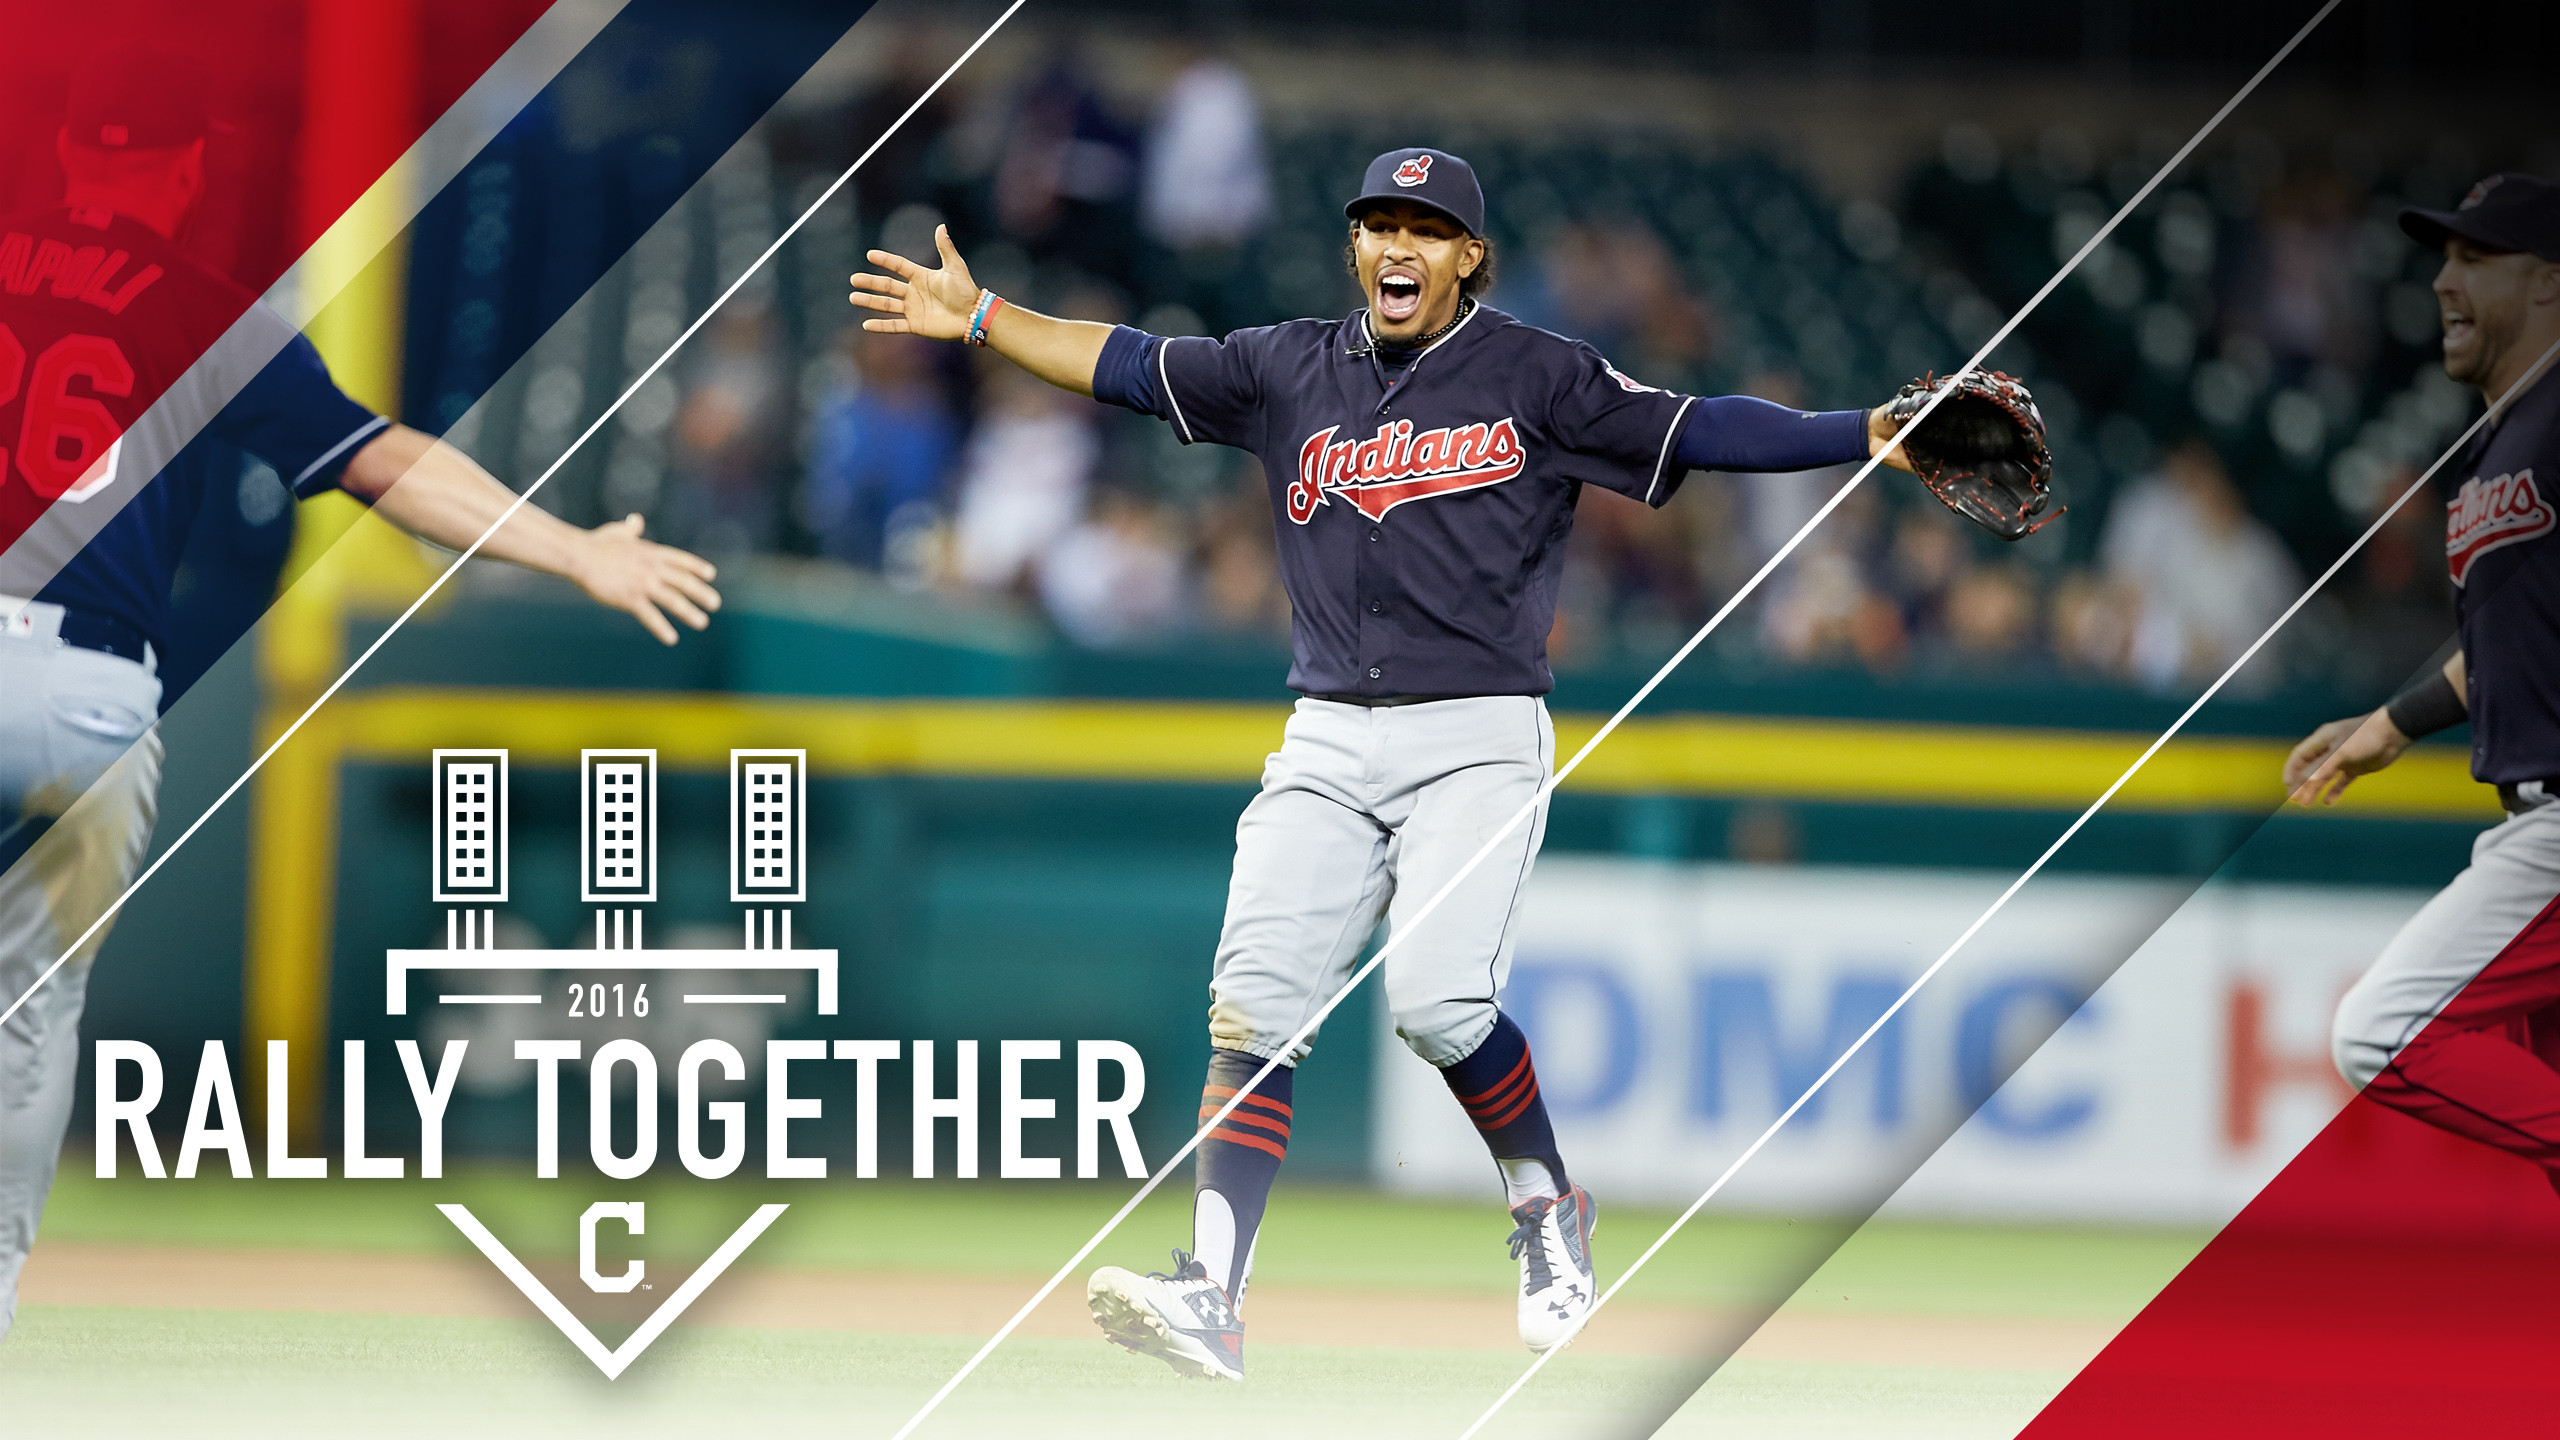 Cleveland Indians Wallpapers ·①